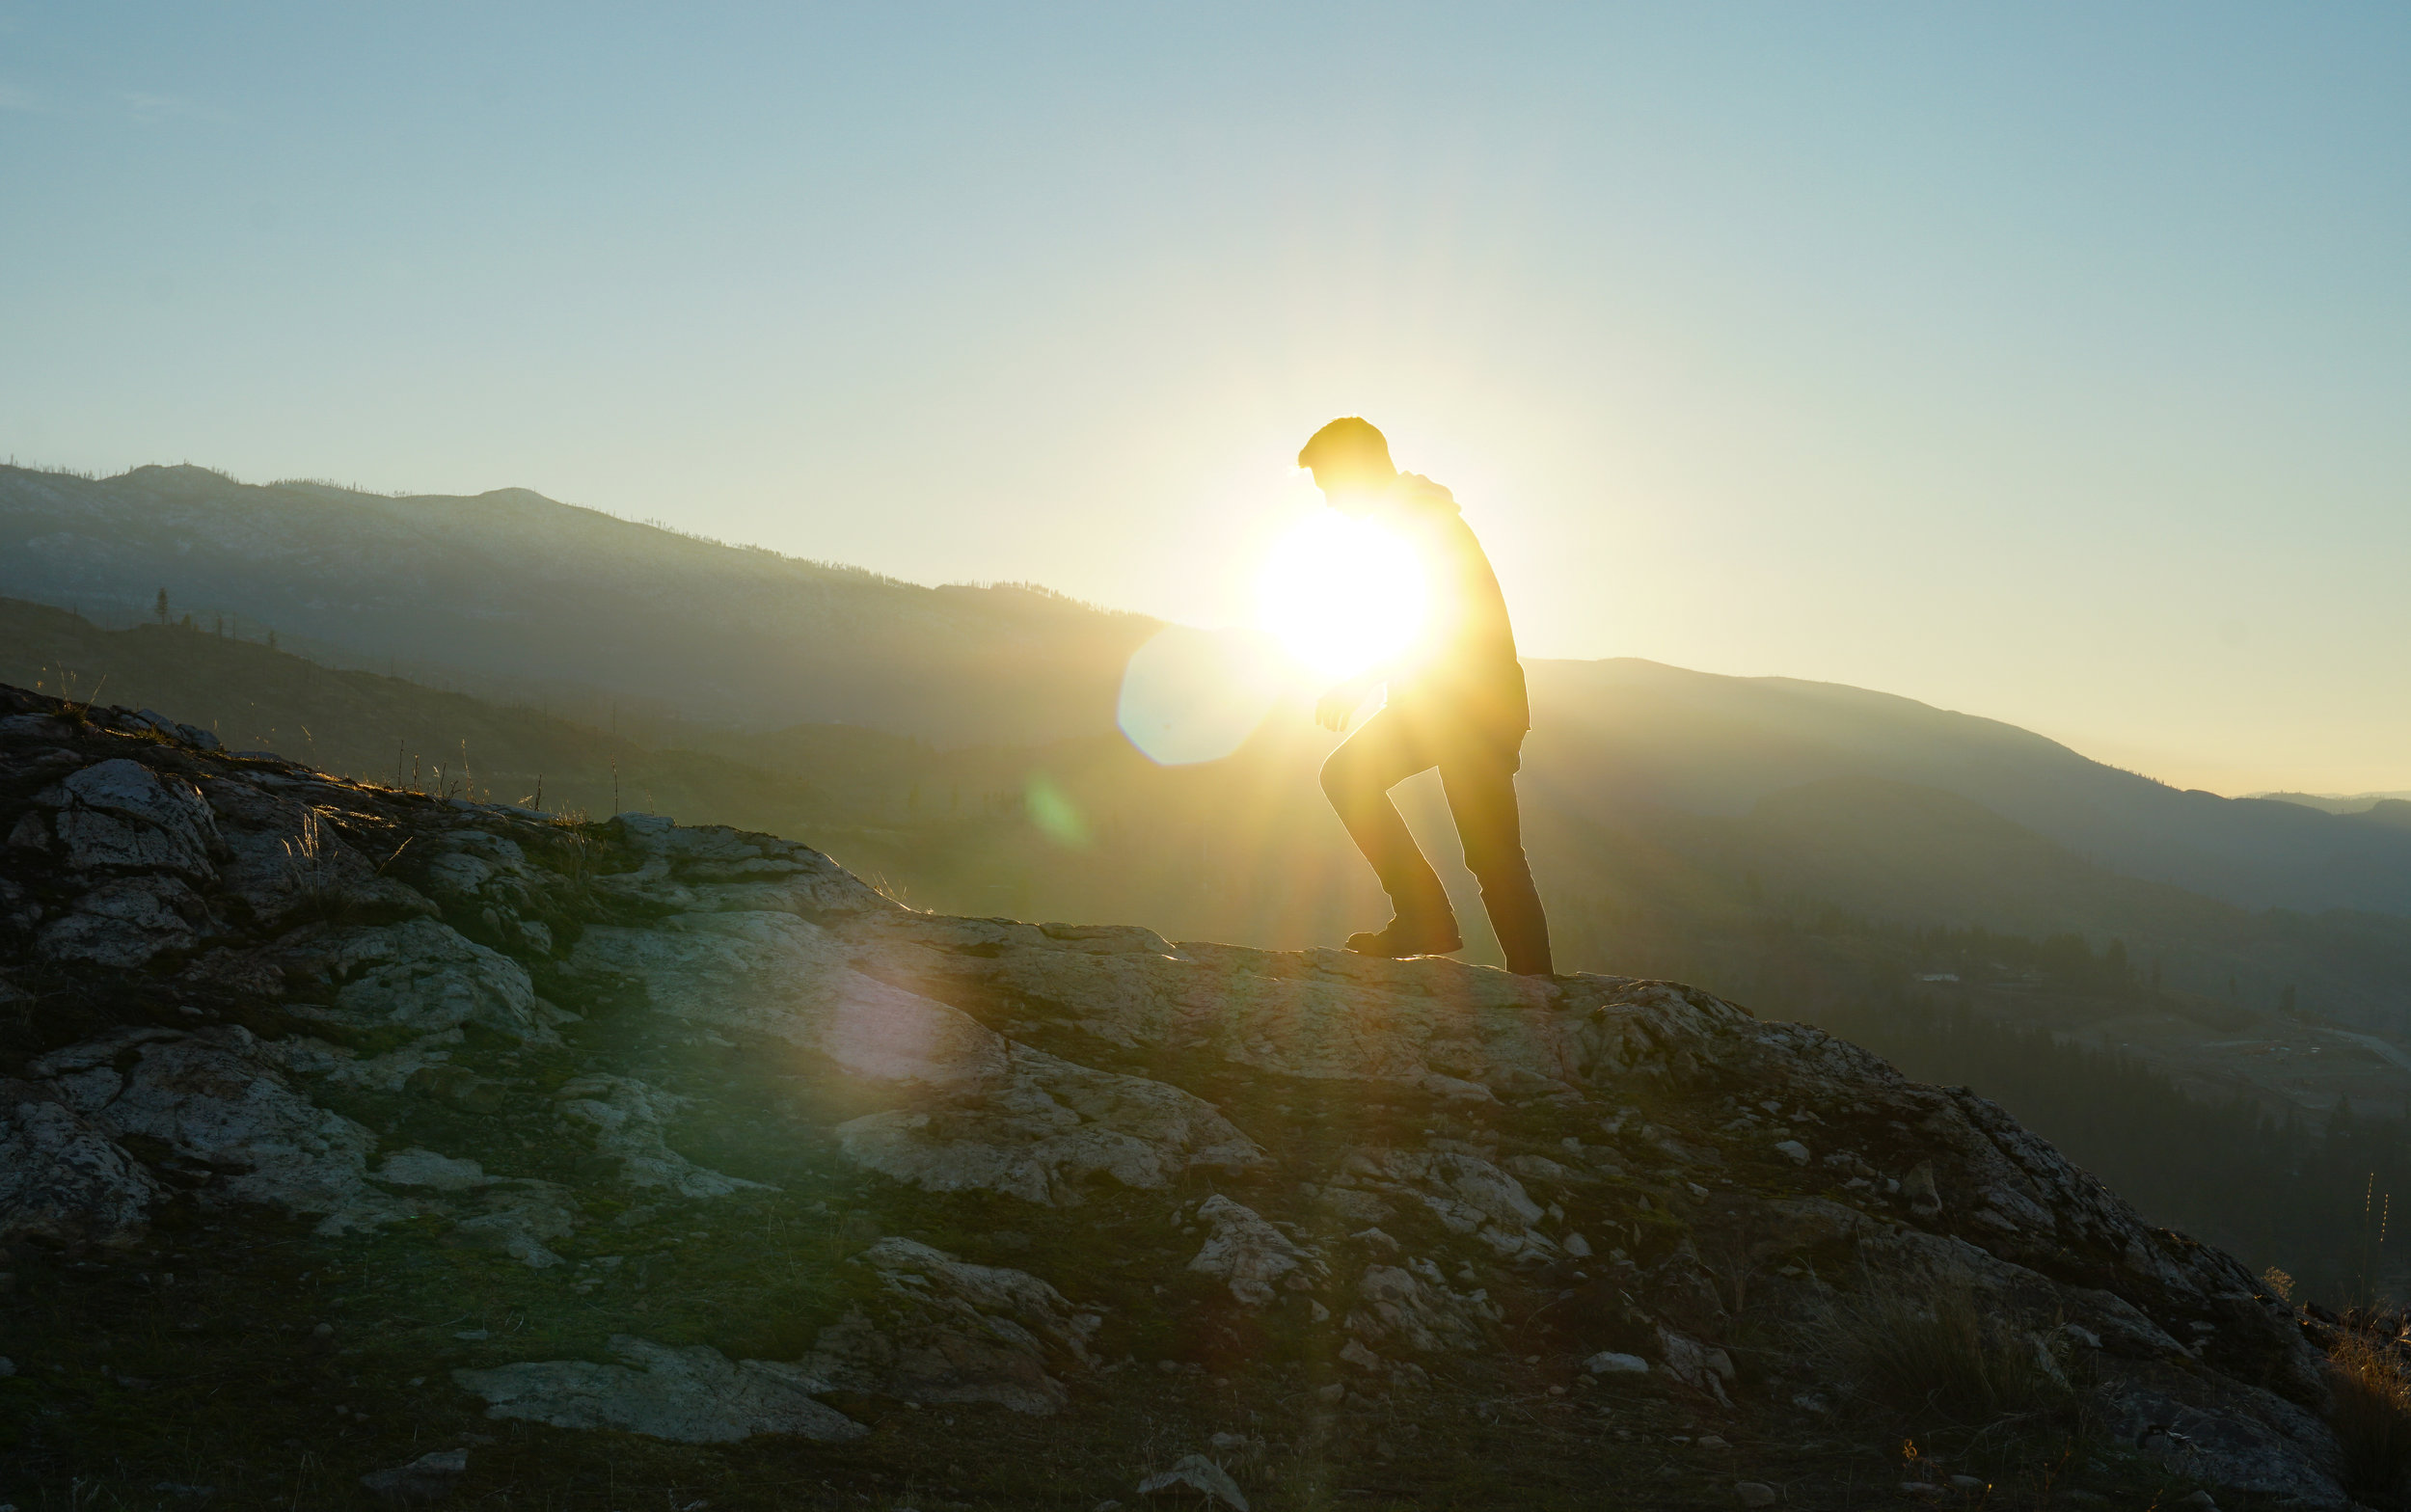 man walking uphill with sun shining behind him showing only the mans silhouette